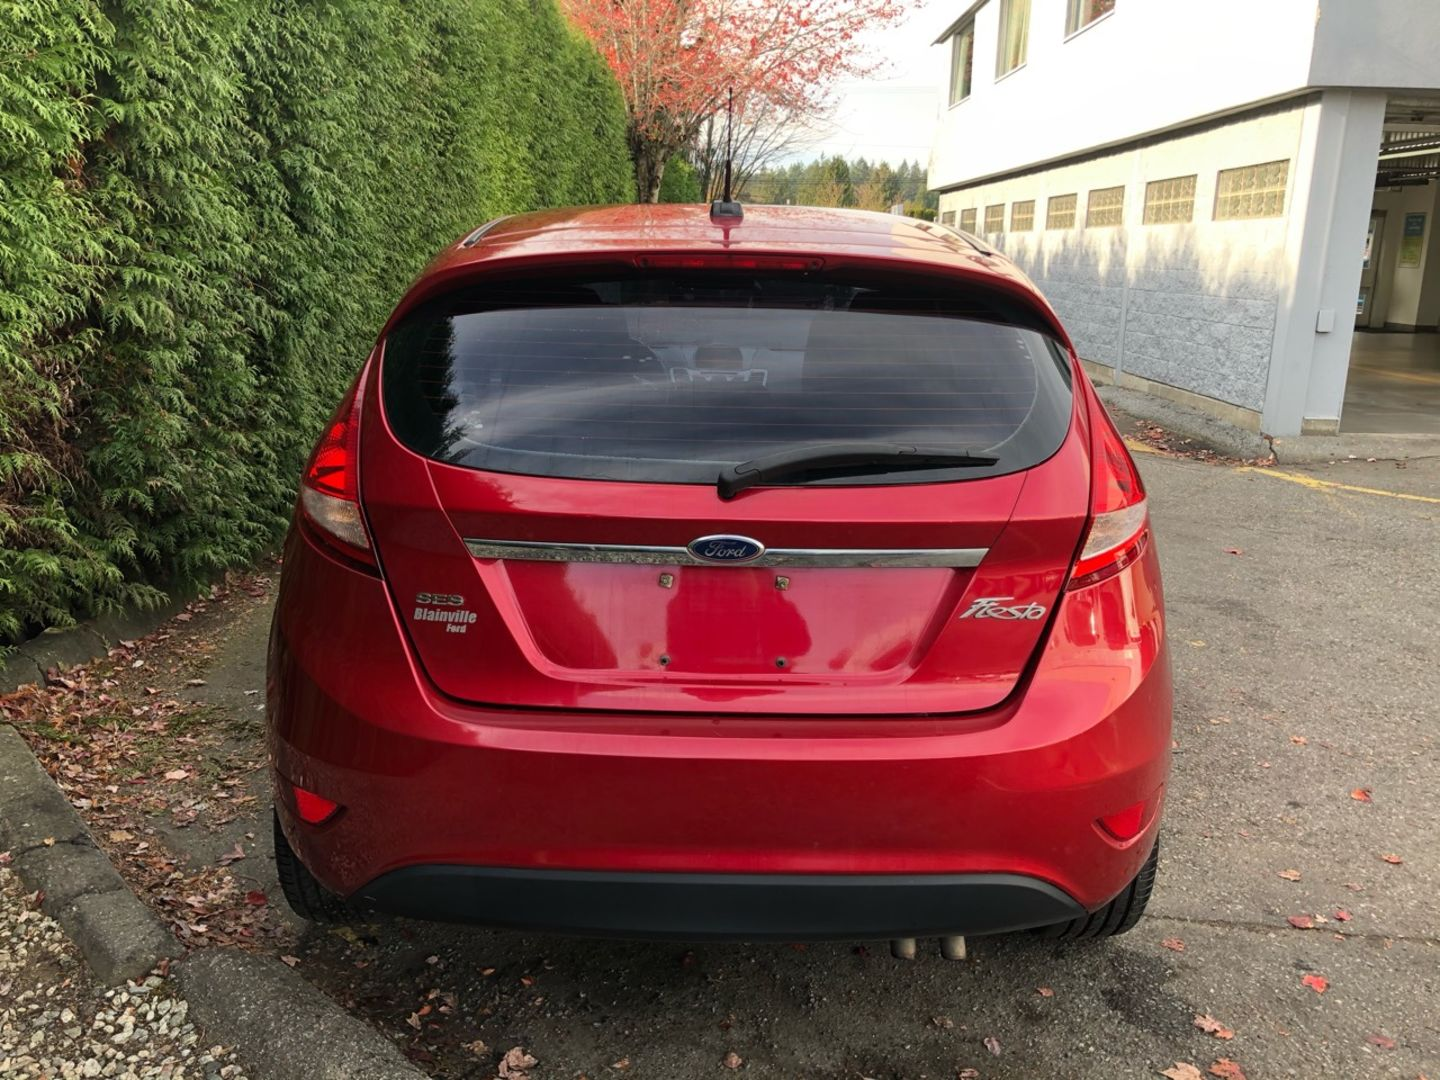 2011 Ford Fiesta SES for sale in Surrey, British Columbia